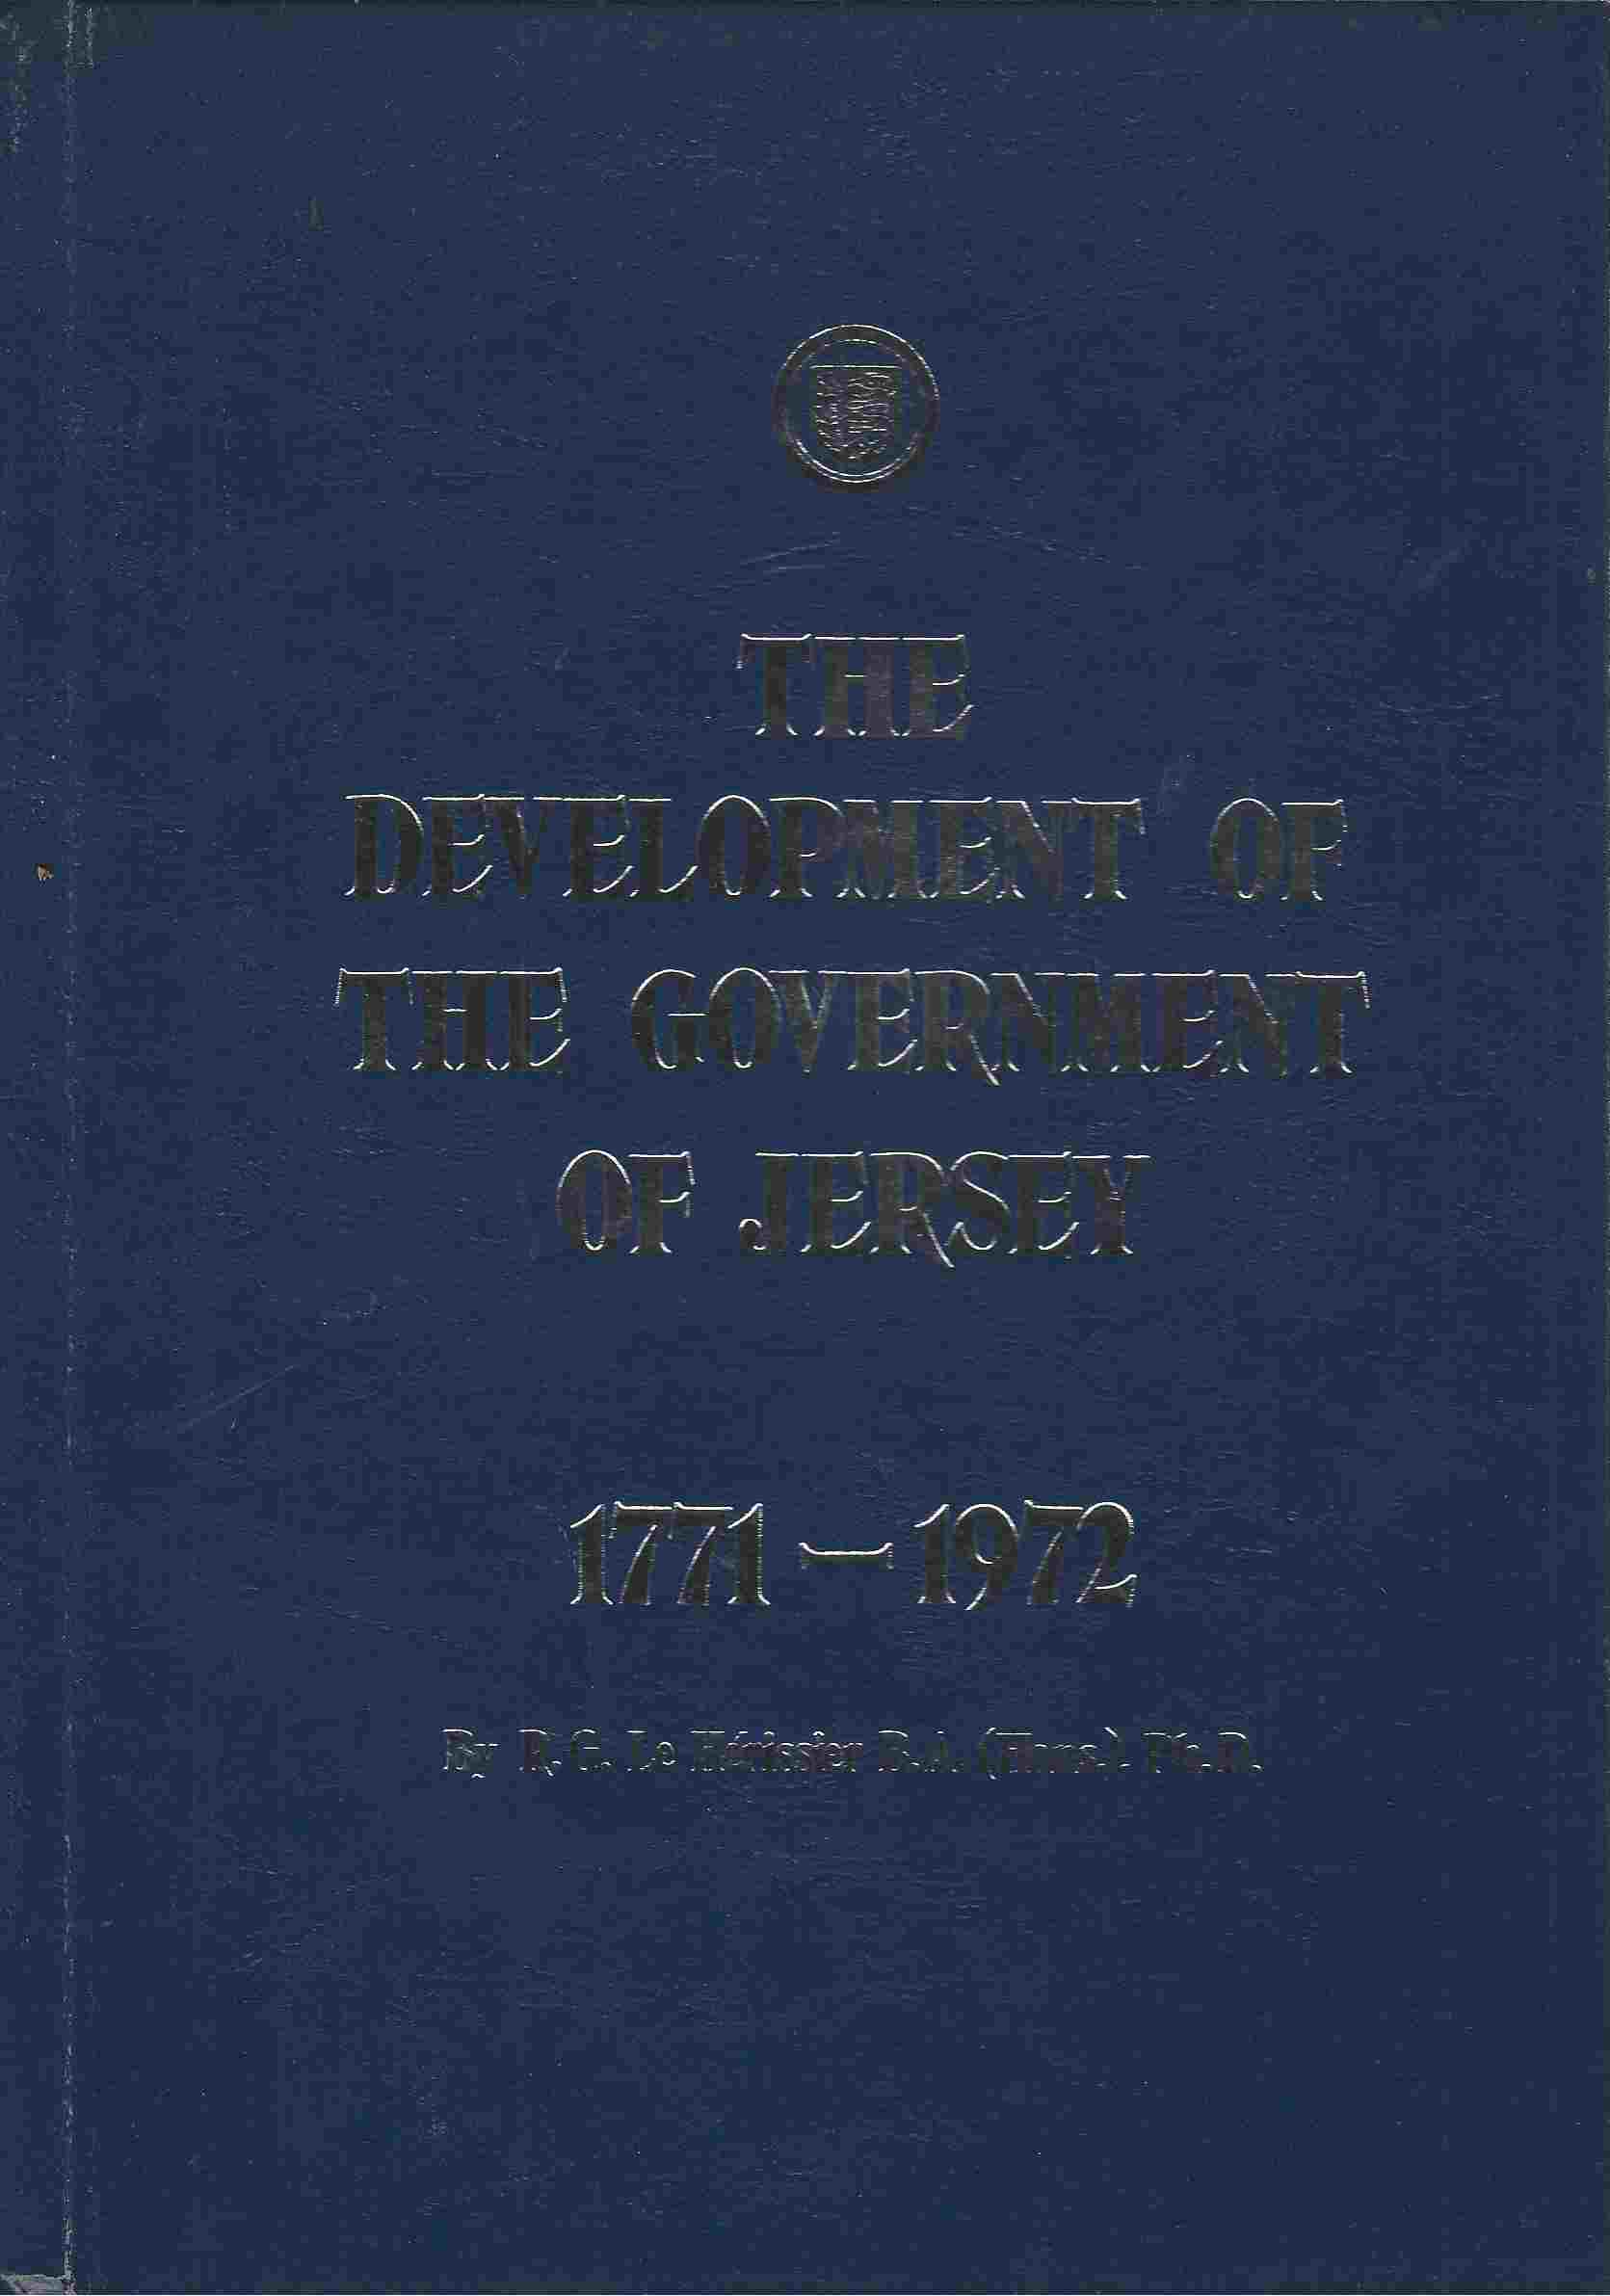 Image for The development of the Government of Jersey, 1771-1972